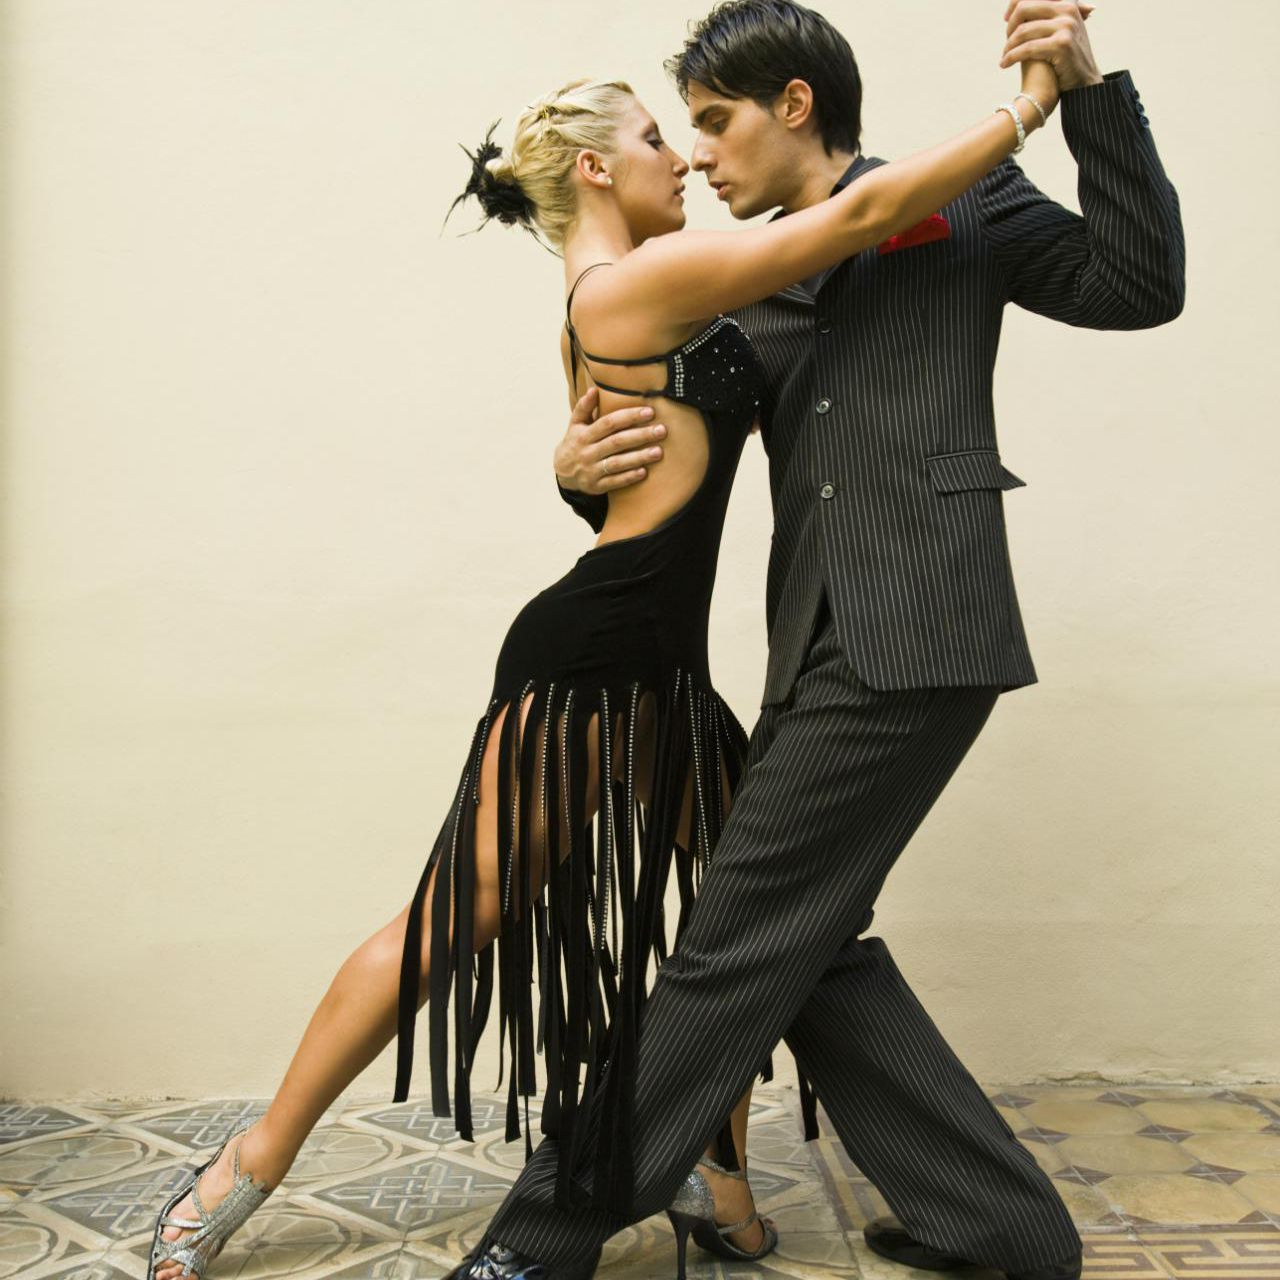 Tango Dance: Definition, Styles, and Techniques